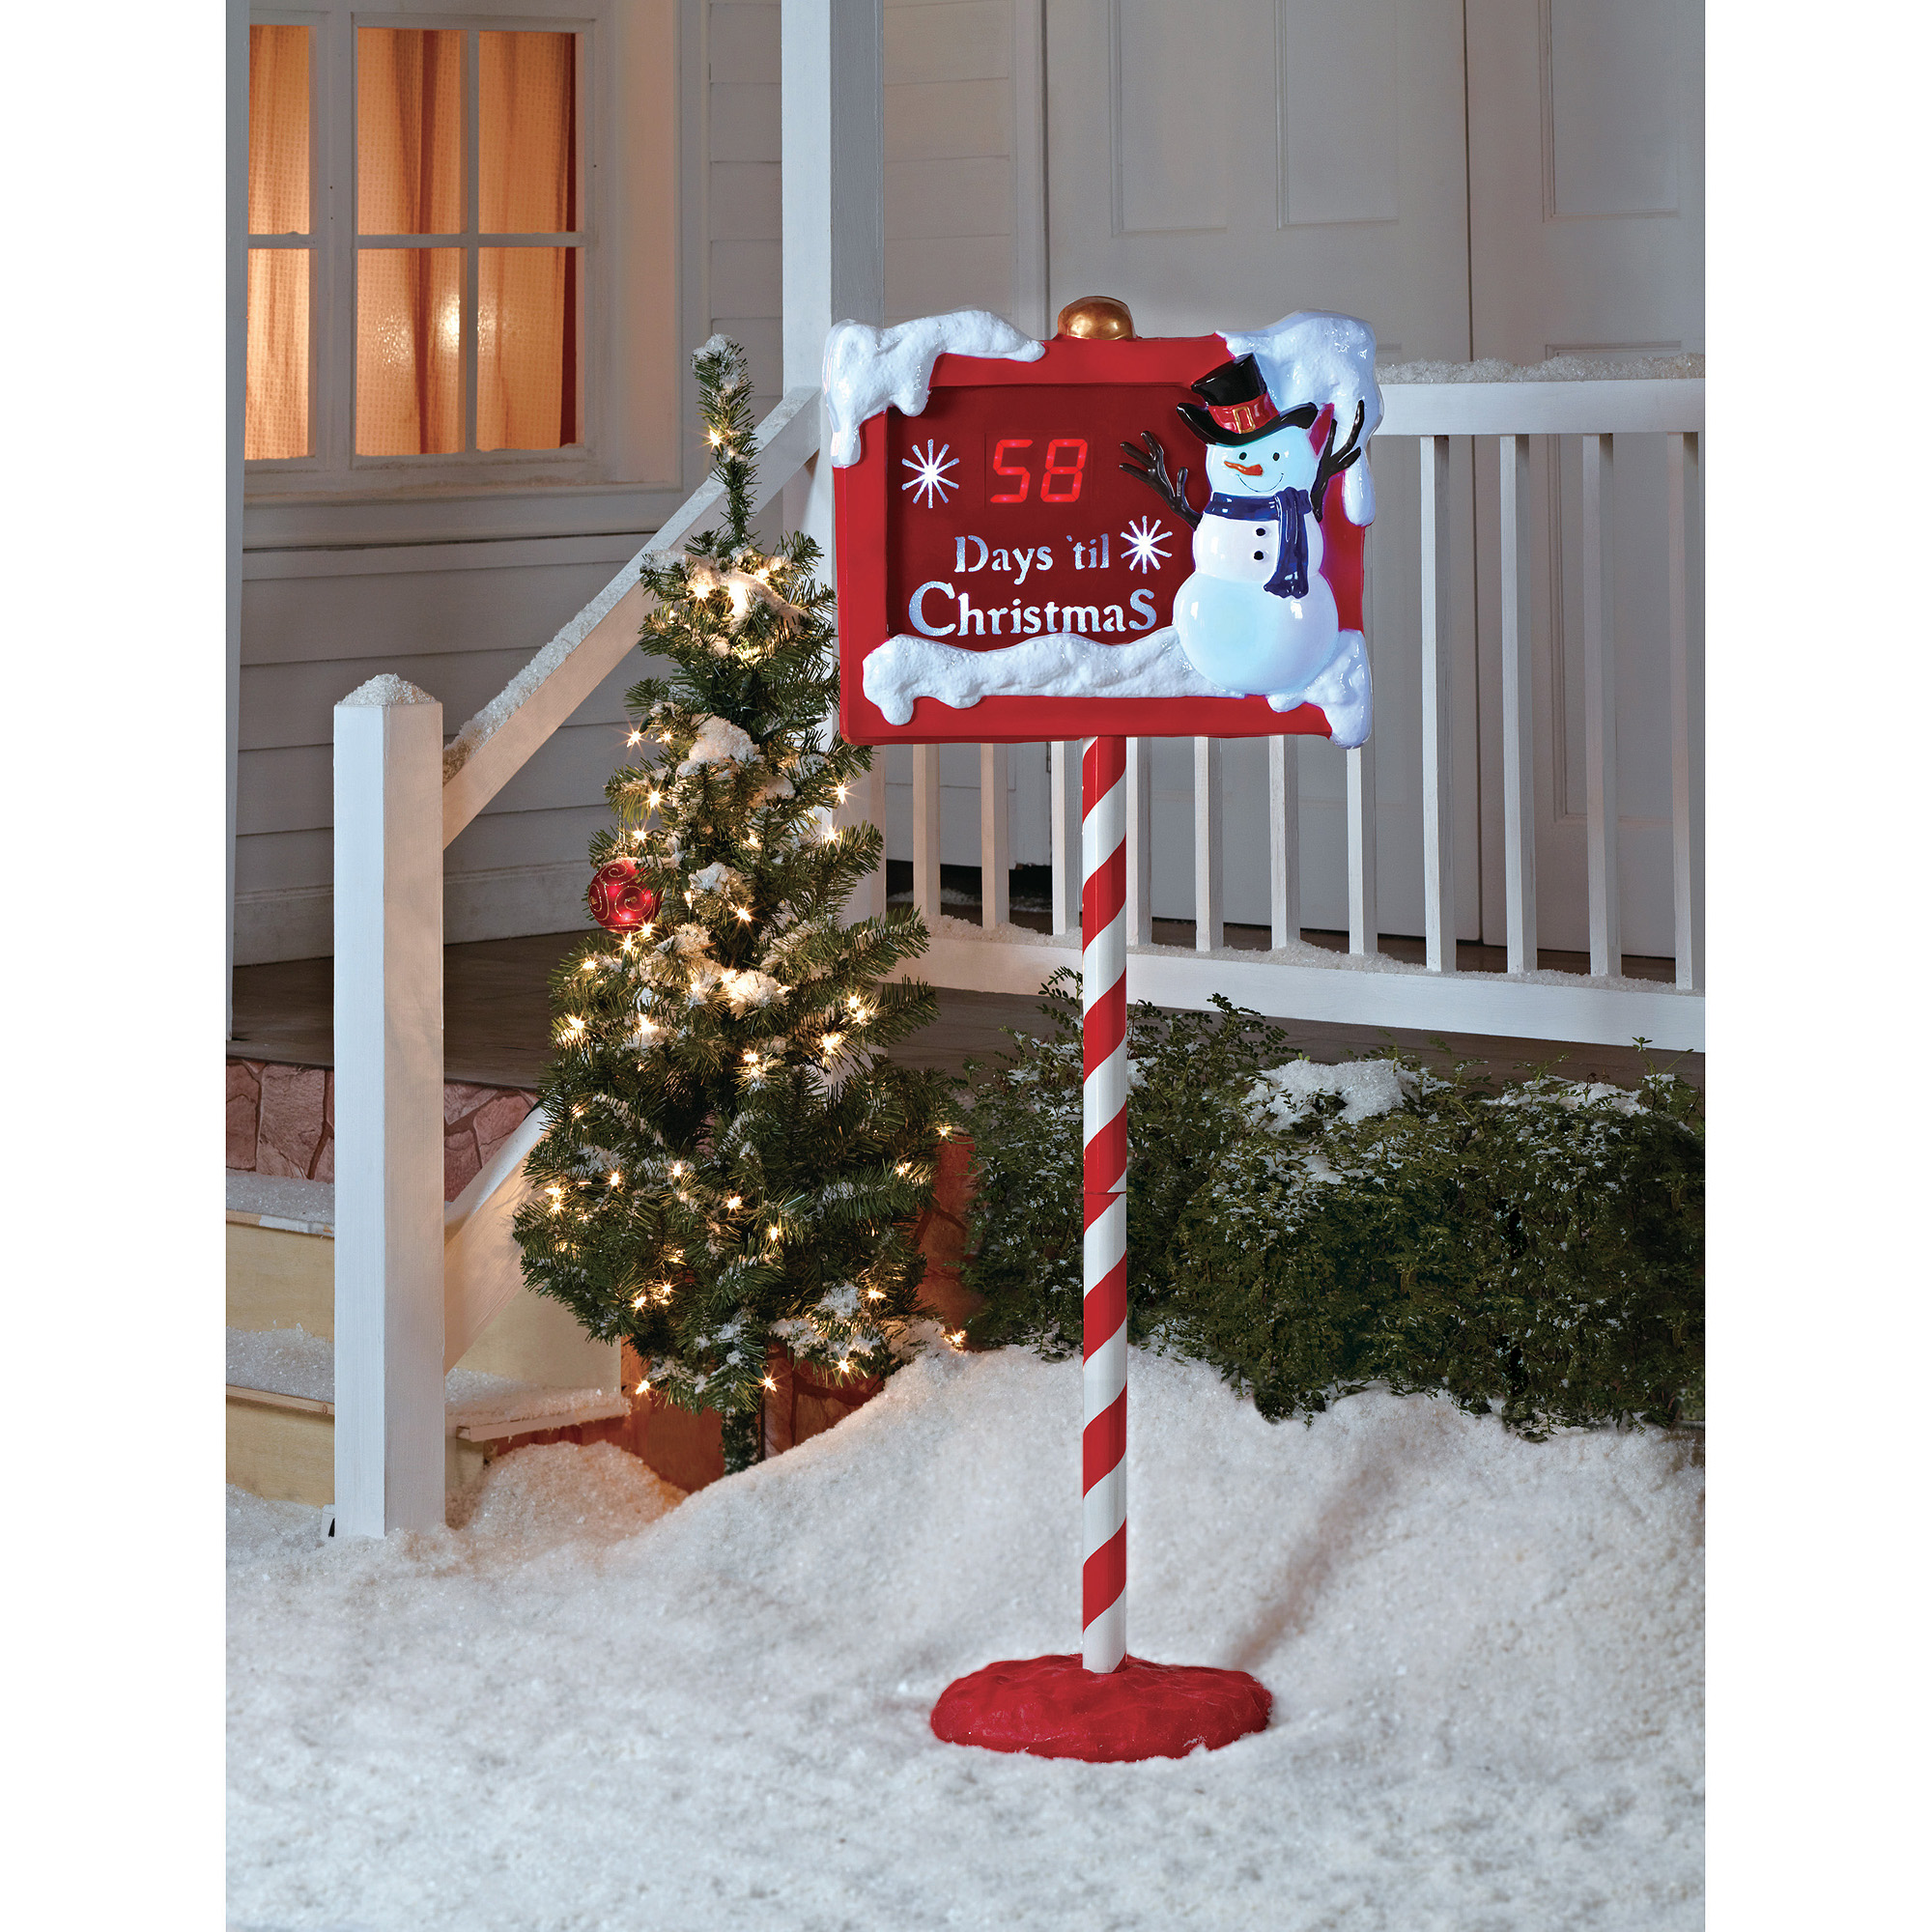 christmas countdown sign walmartcom - Walmart Christmas Yard Decorations